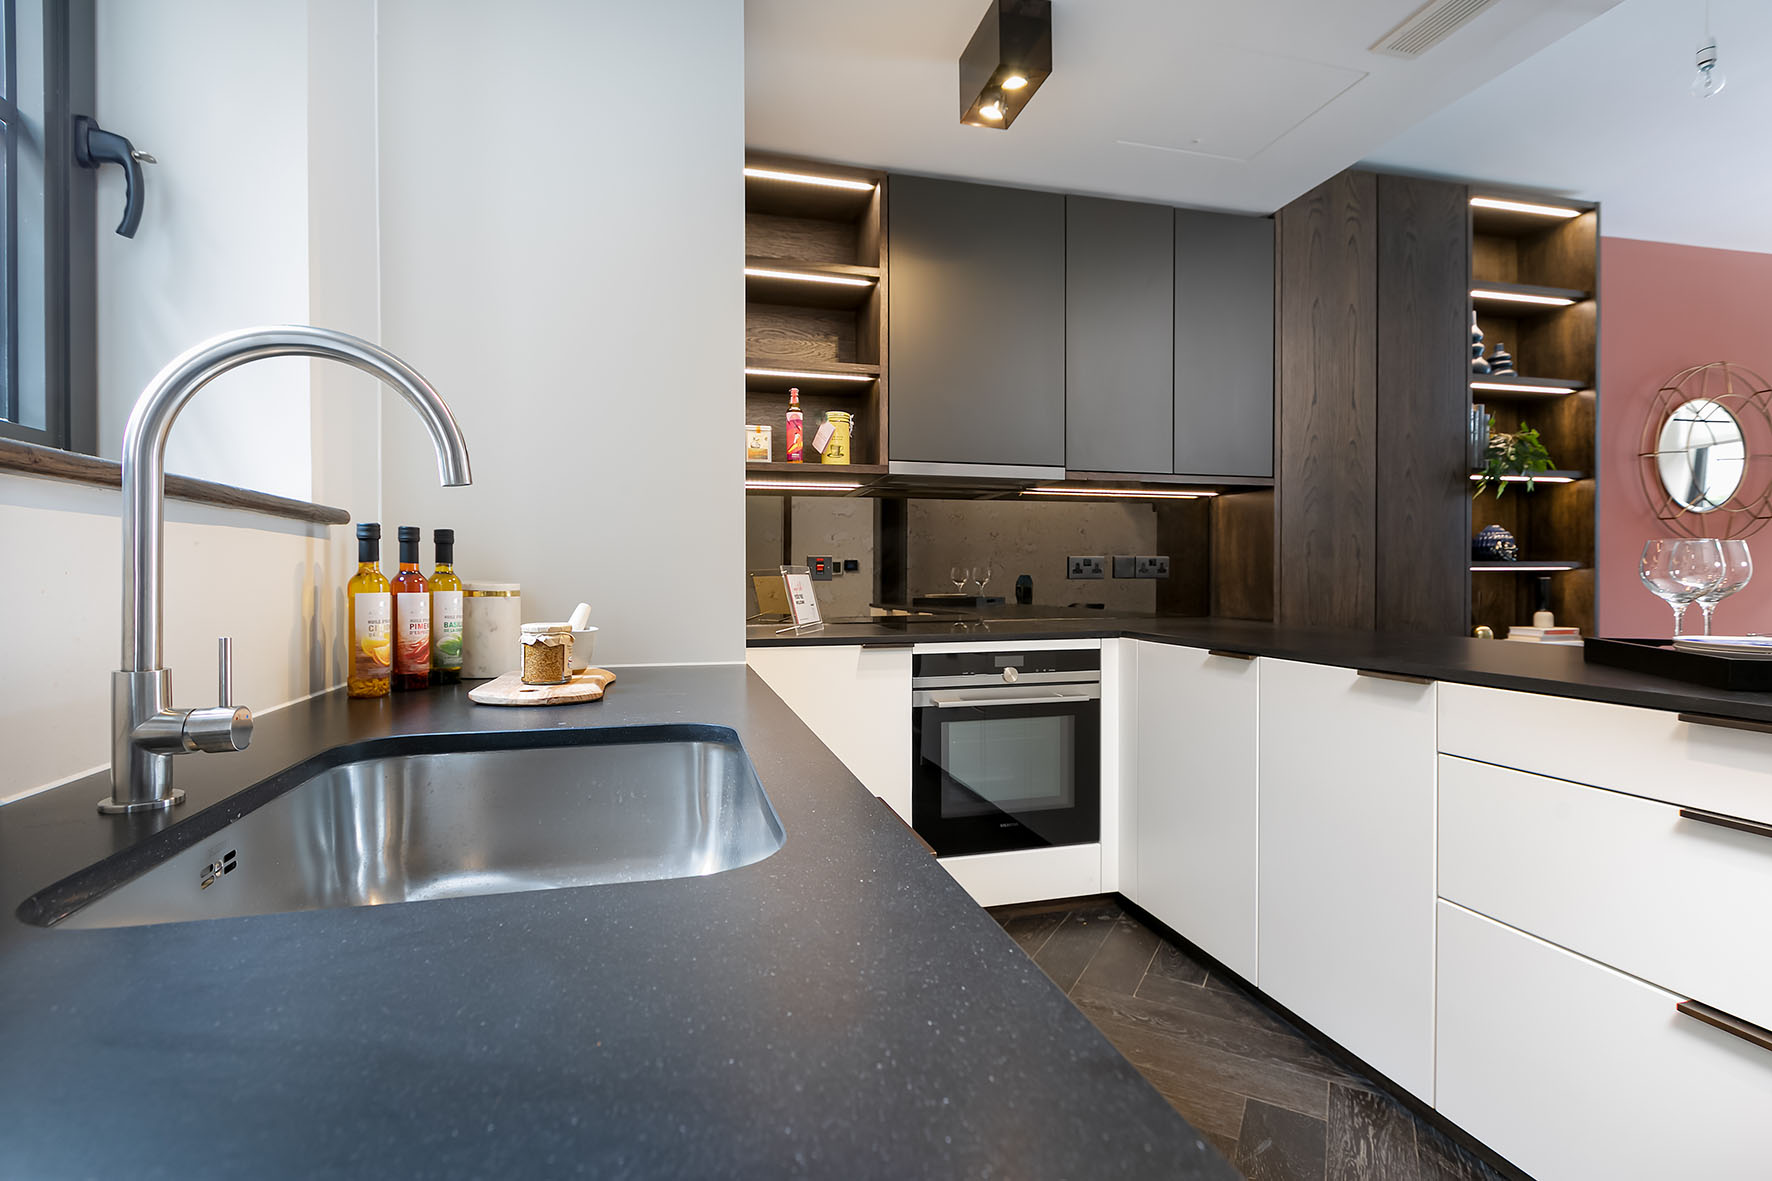 Lovelydays luxury service apartment rental - London - Soho - Berwick Street III - Lovelysuite - 1 bedrooms - 1 bathrooms - Luxury kitchen - rent apartments london - 84f5cc7807b8 - Lovelydays